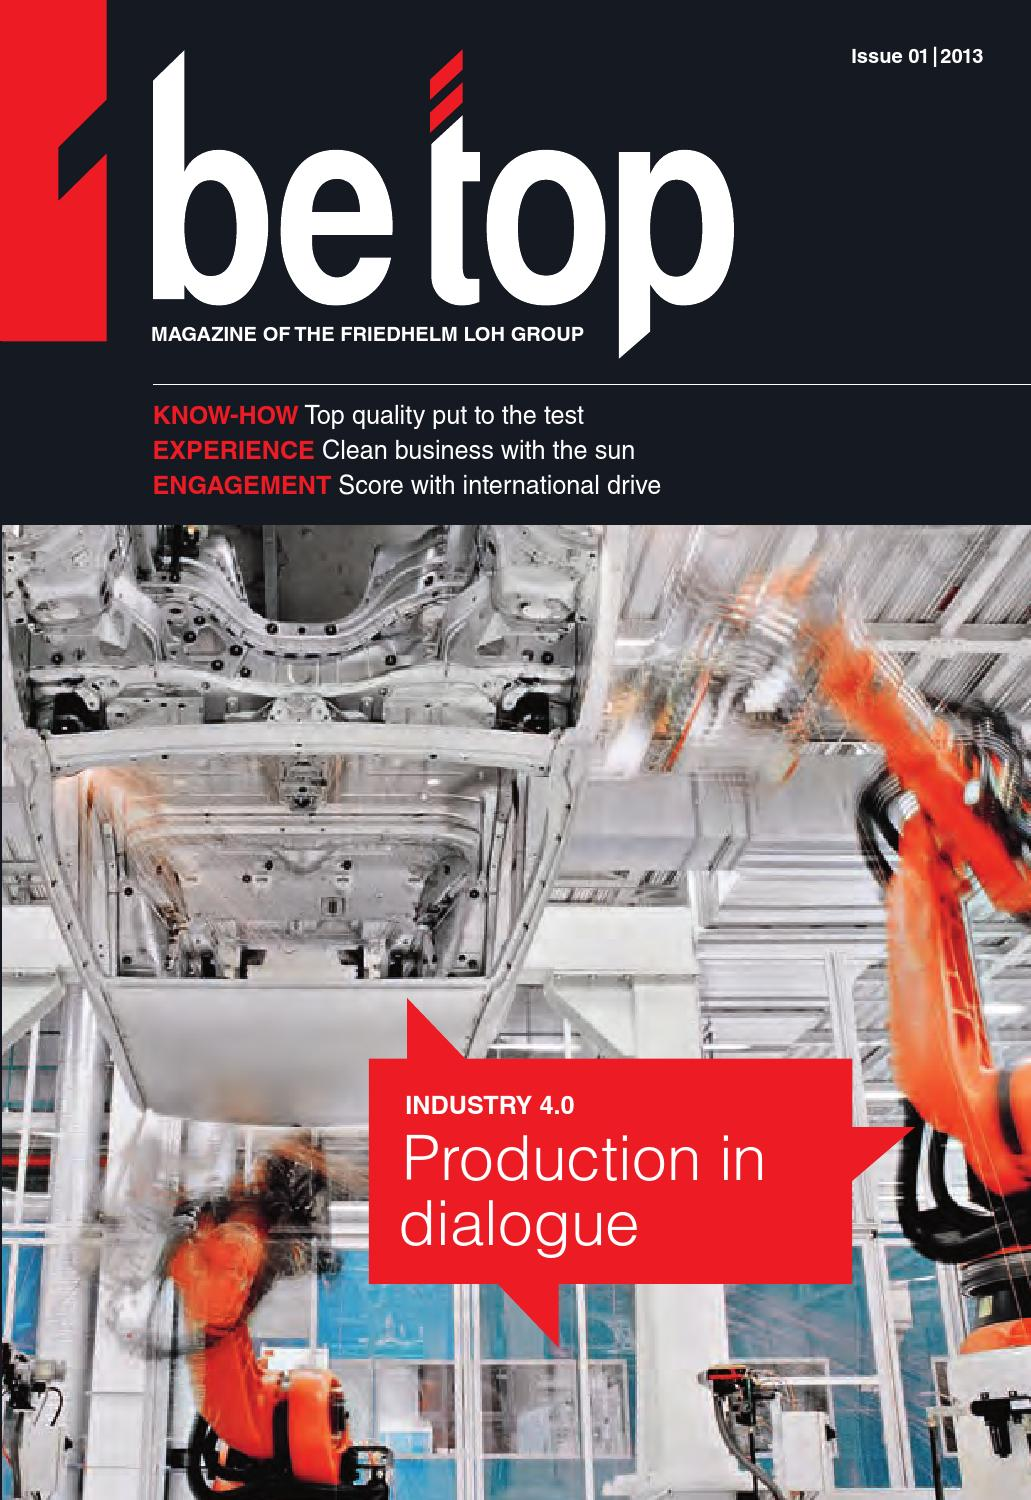 Be top 01/2013 by Rittal bv - issuu